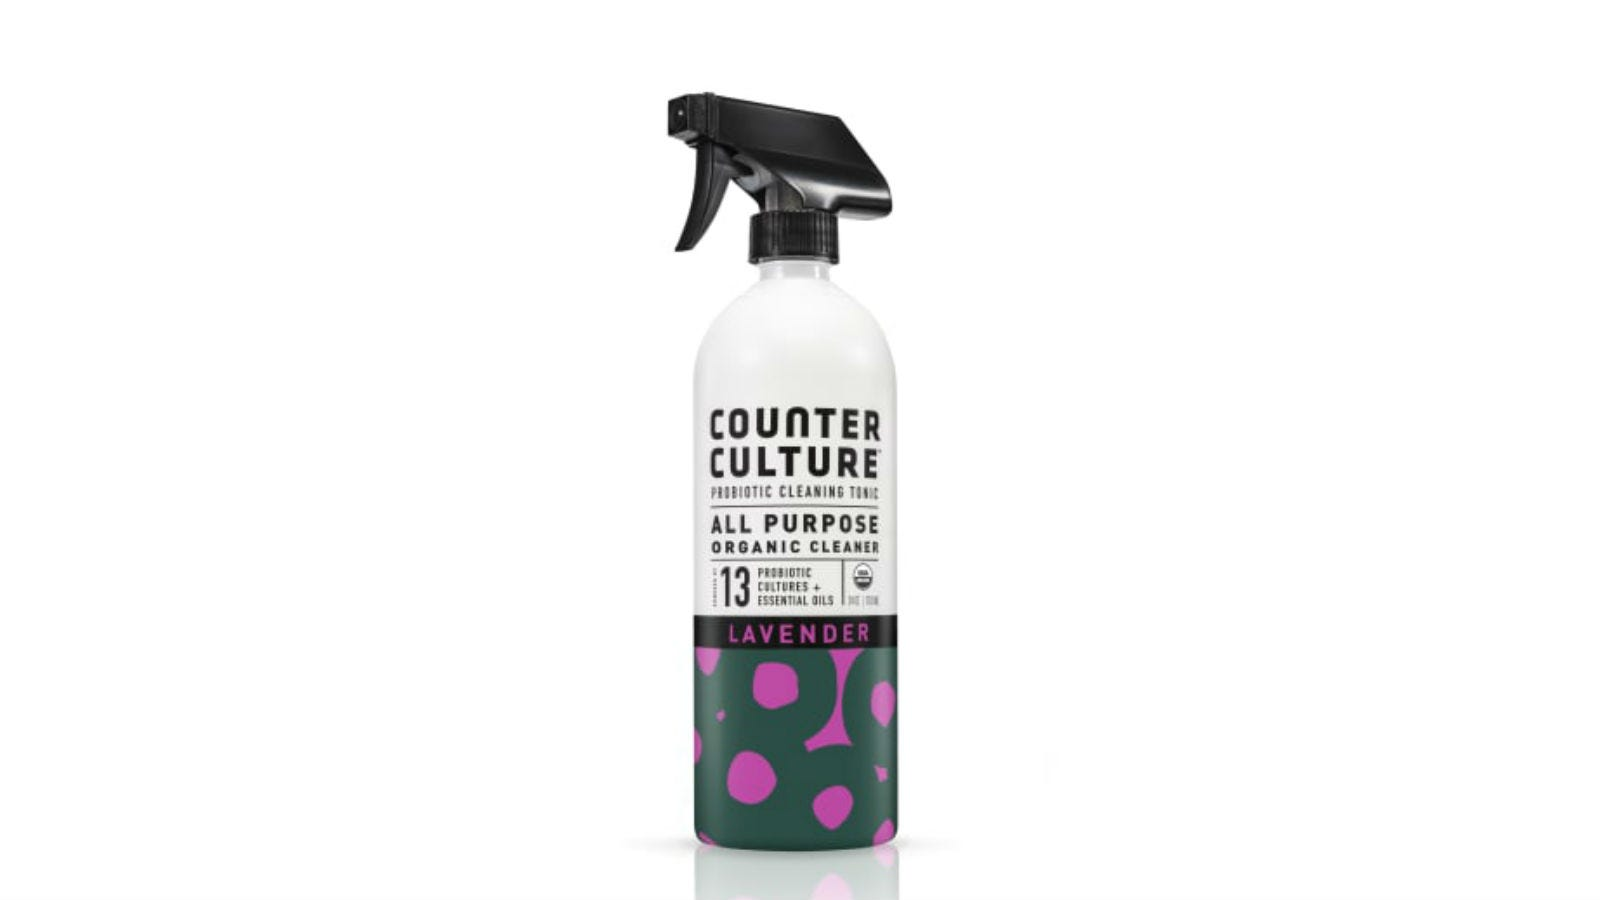 A spray bottle of Counter Culture Probiotic All-Purpose Organic Cleaner.